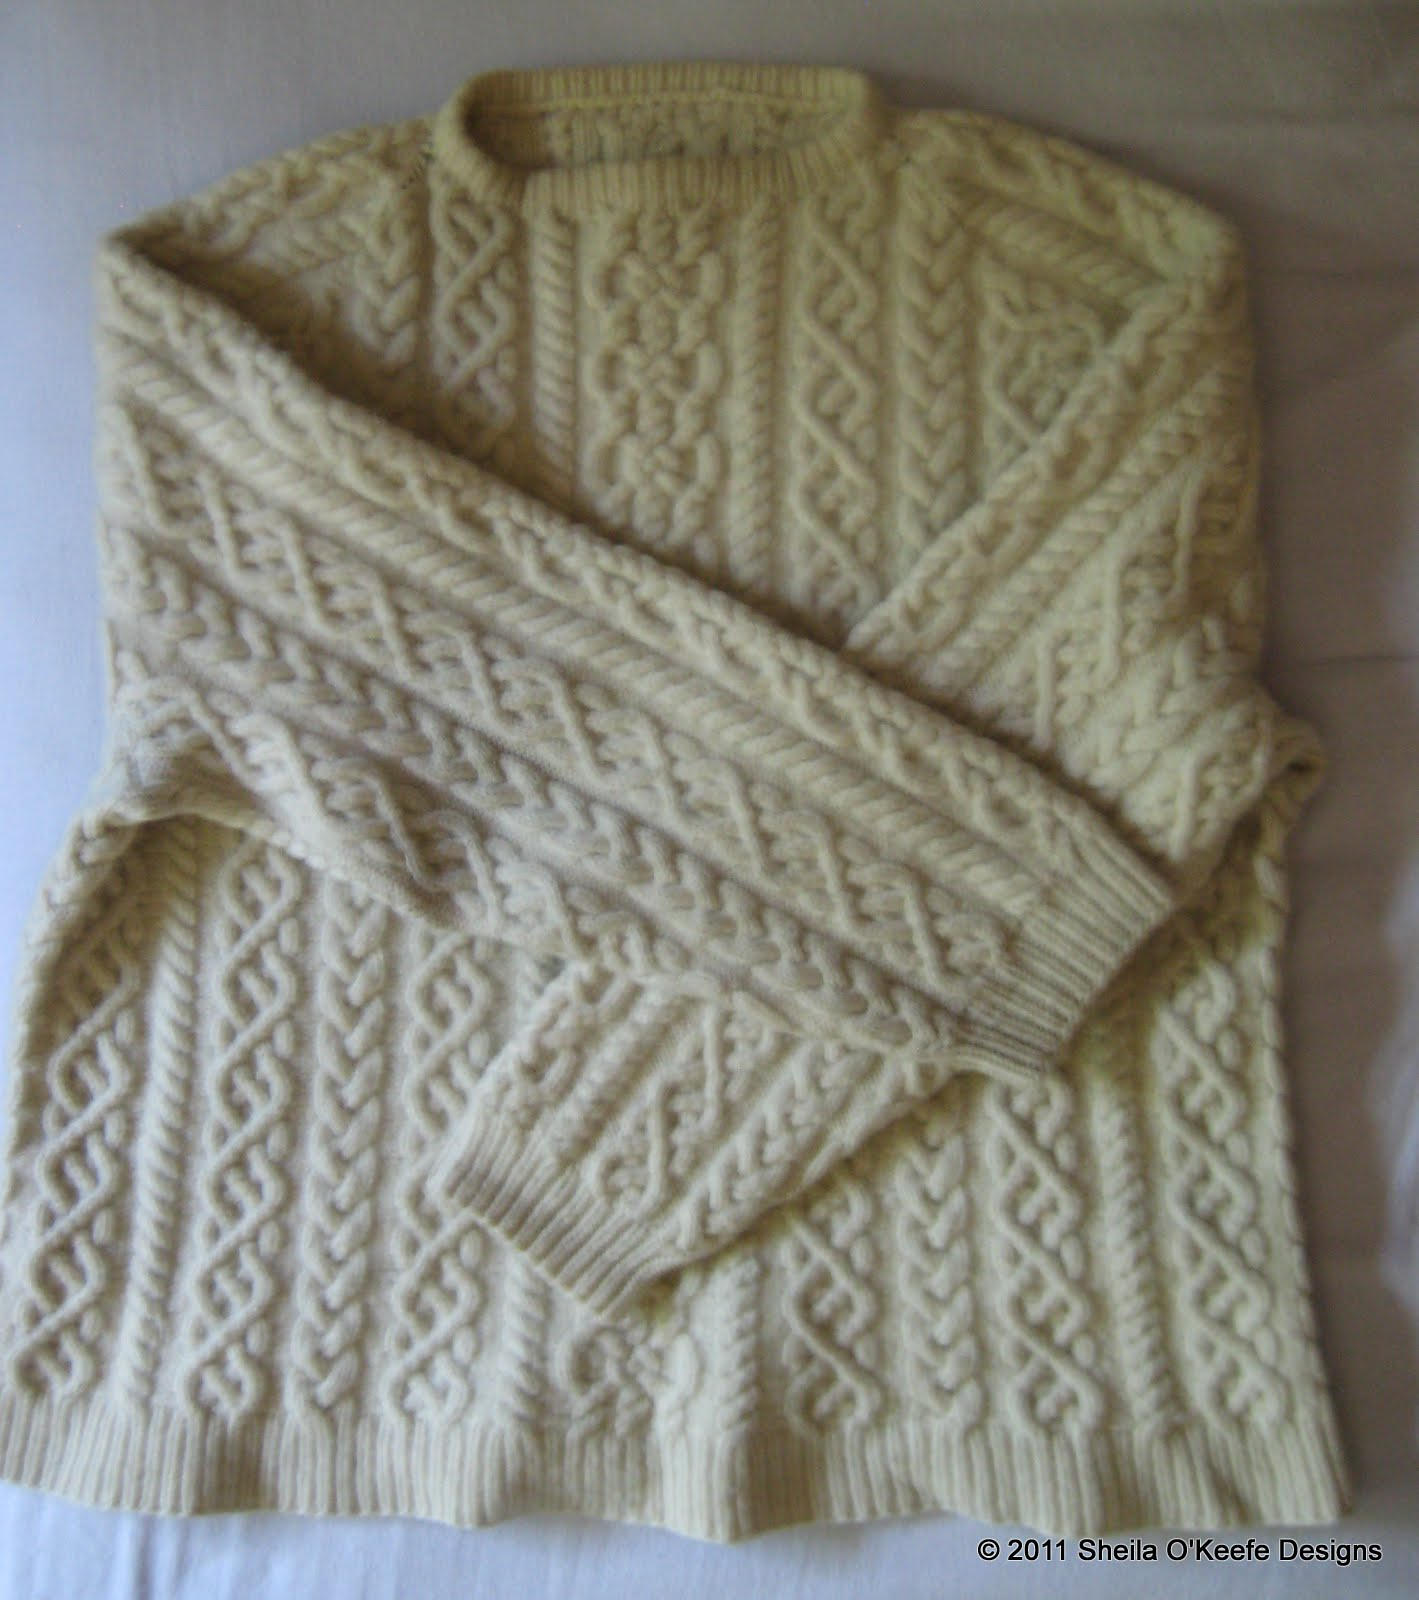 Knitting Jobs Near Me : Sheila o keefe designs yet another knitting